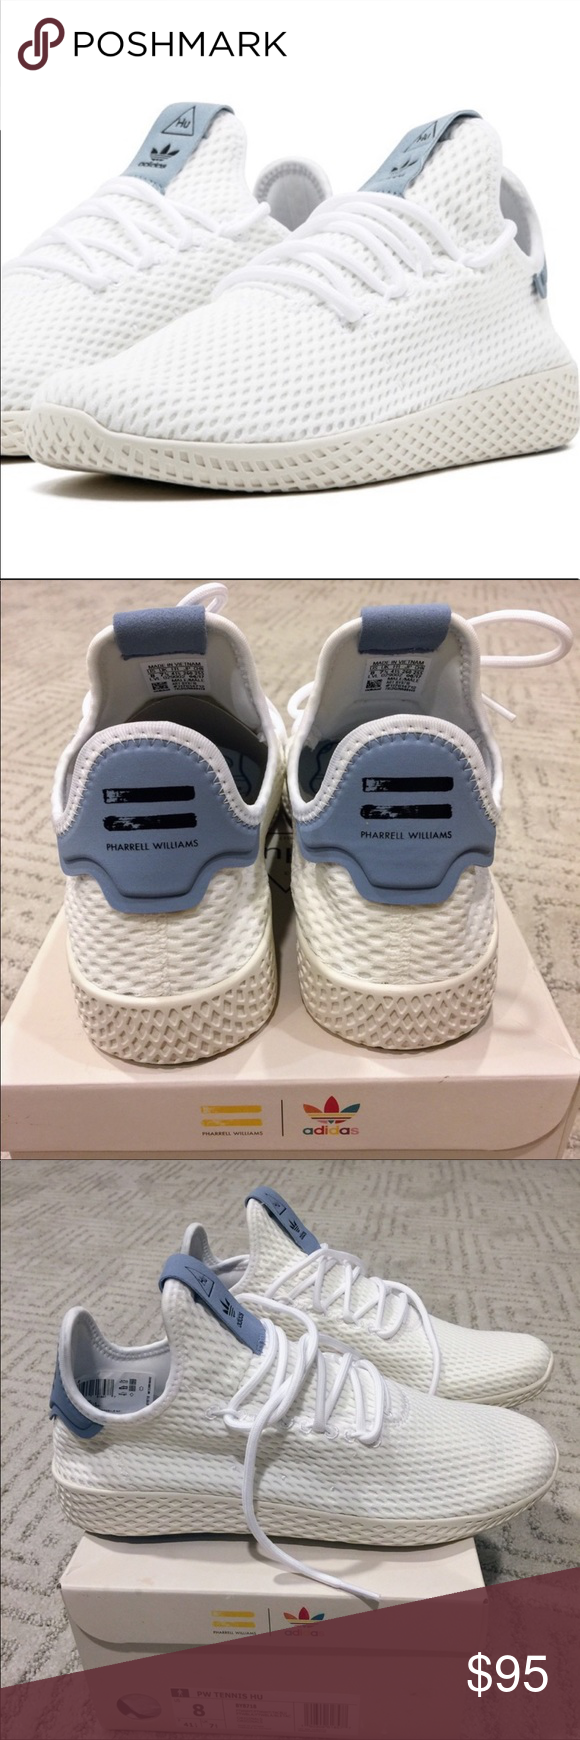 Adidas Pharrell Williams Tennis Hu BNWB adidas originals PW Tennis Hu. Size  8. White blue 6bf5651e01e